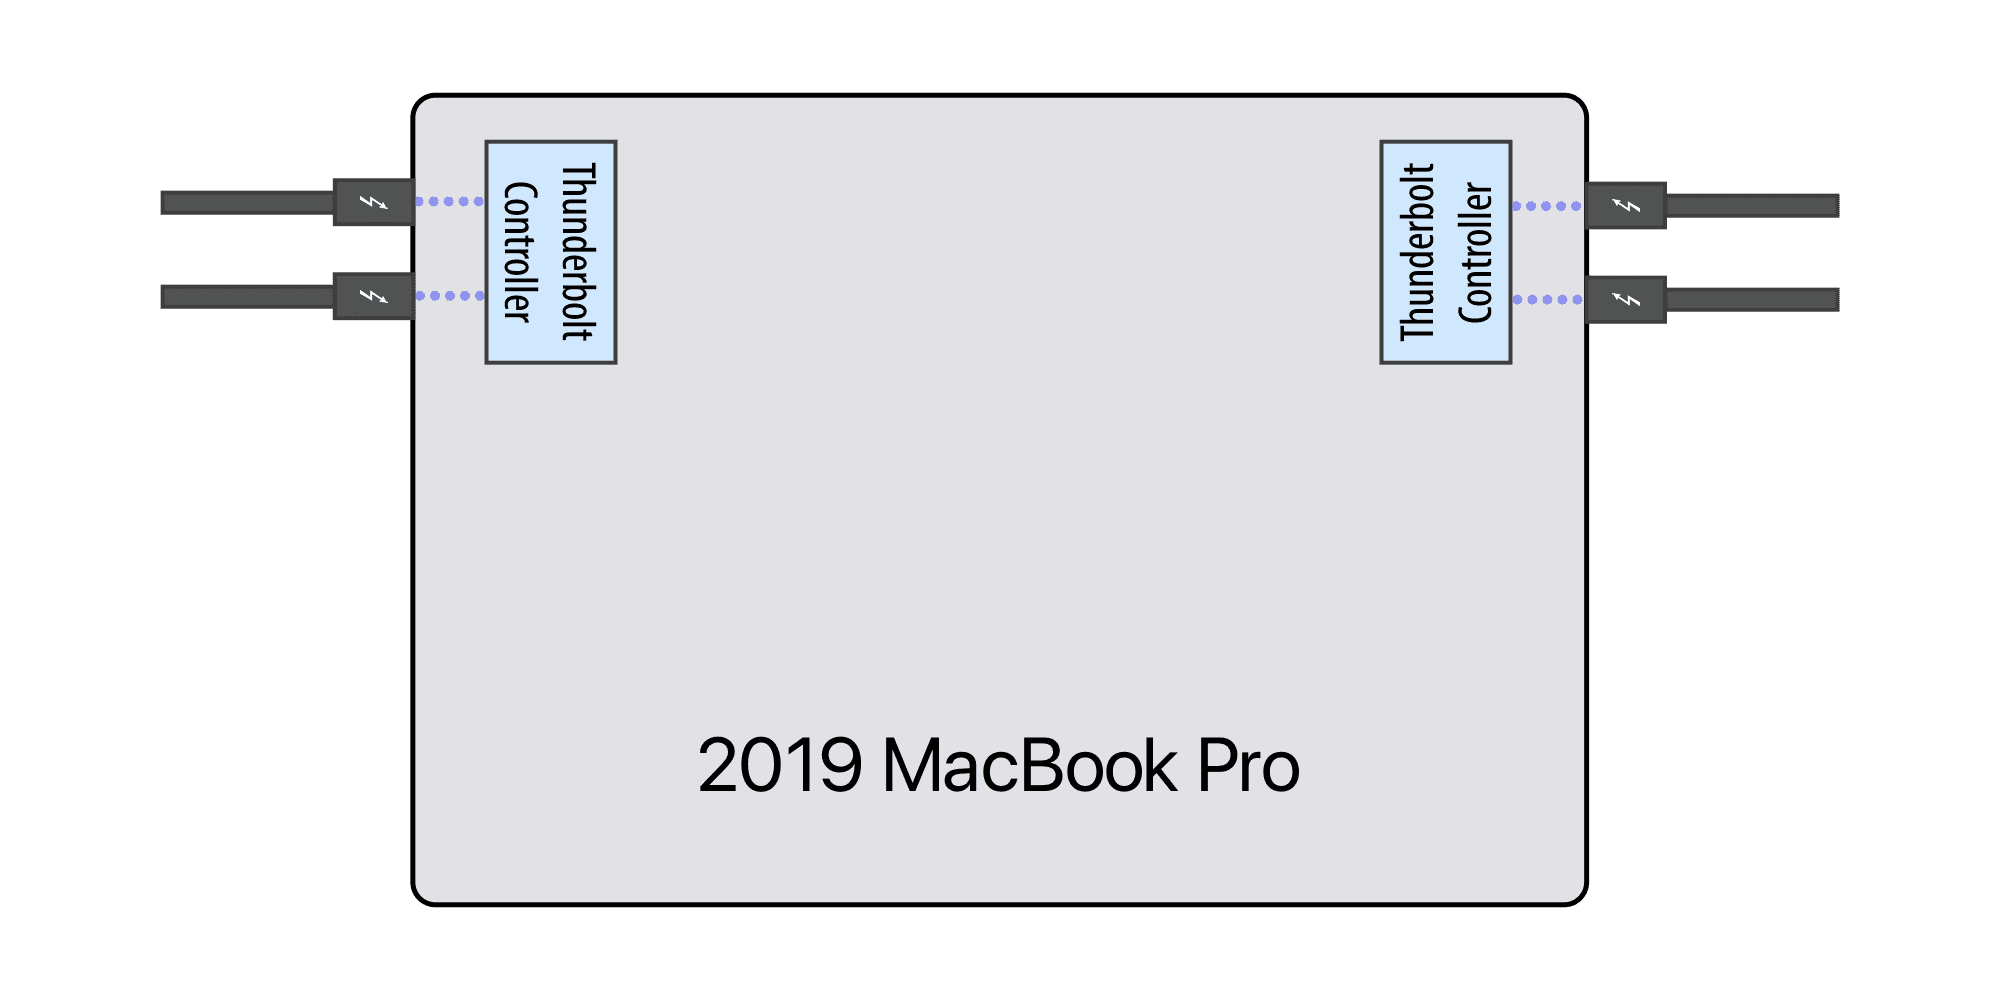 Infographic showing Thunderbolt controllers on a MacBook Pro